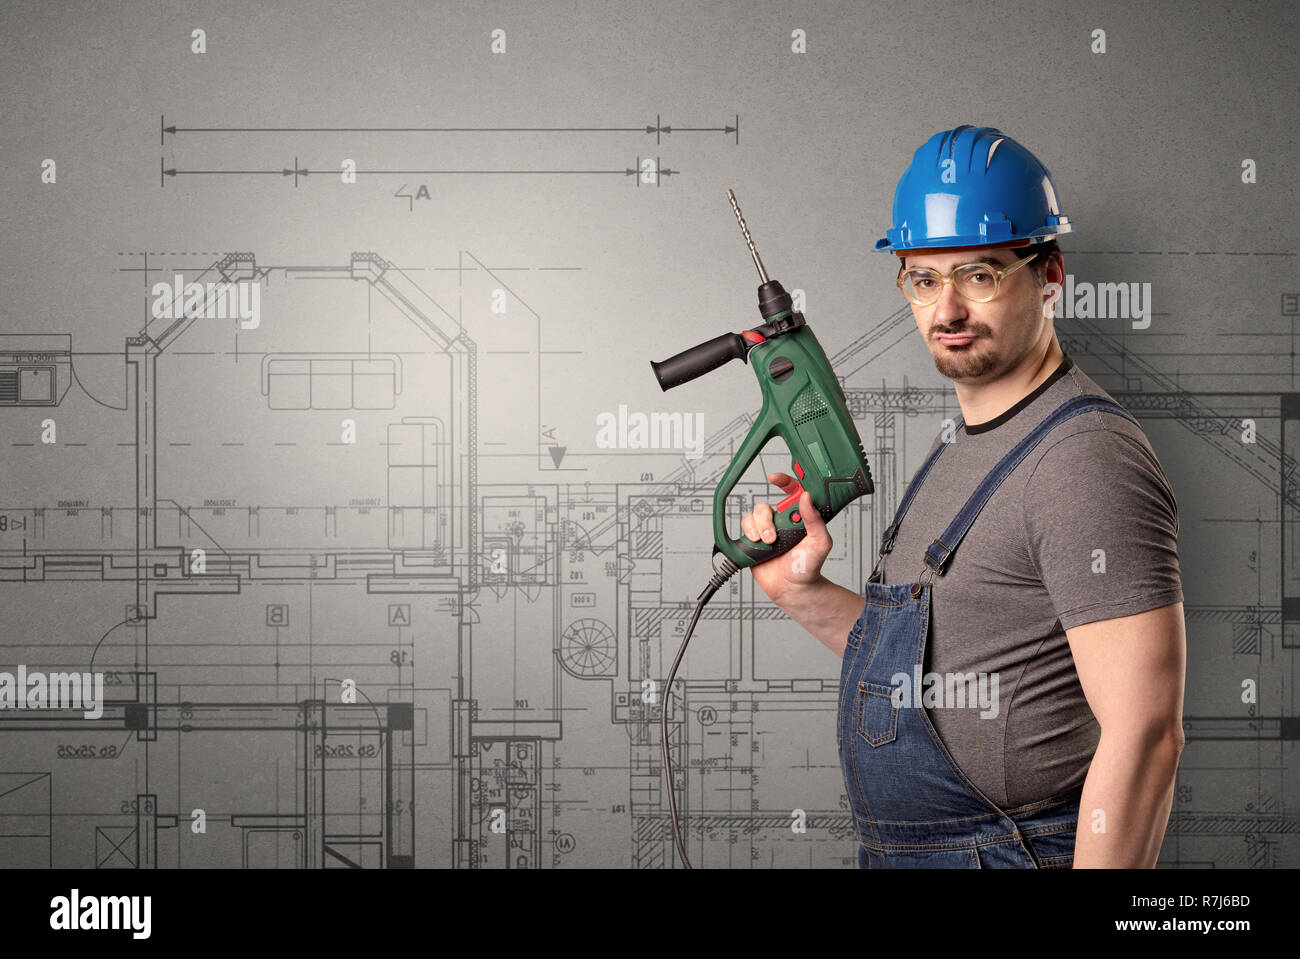 Worker standing with tool in his hand in front of technical drawings. - Stock Image